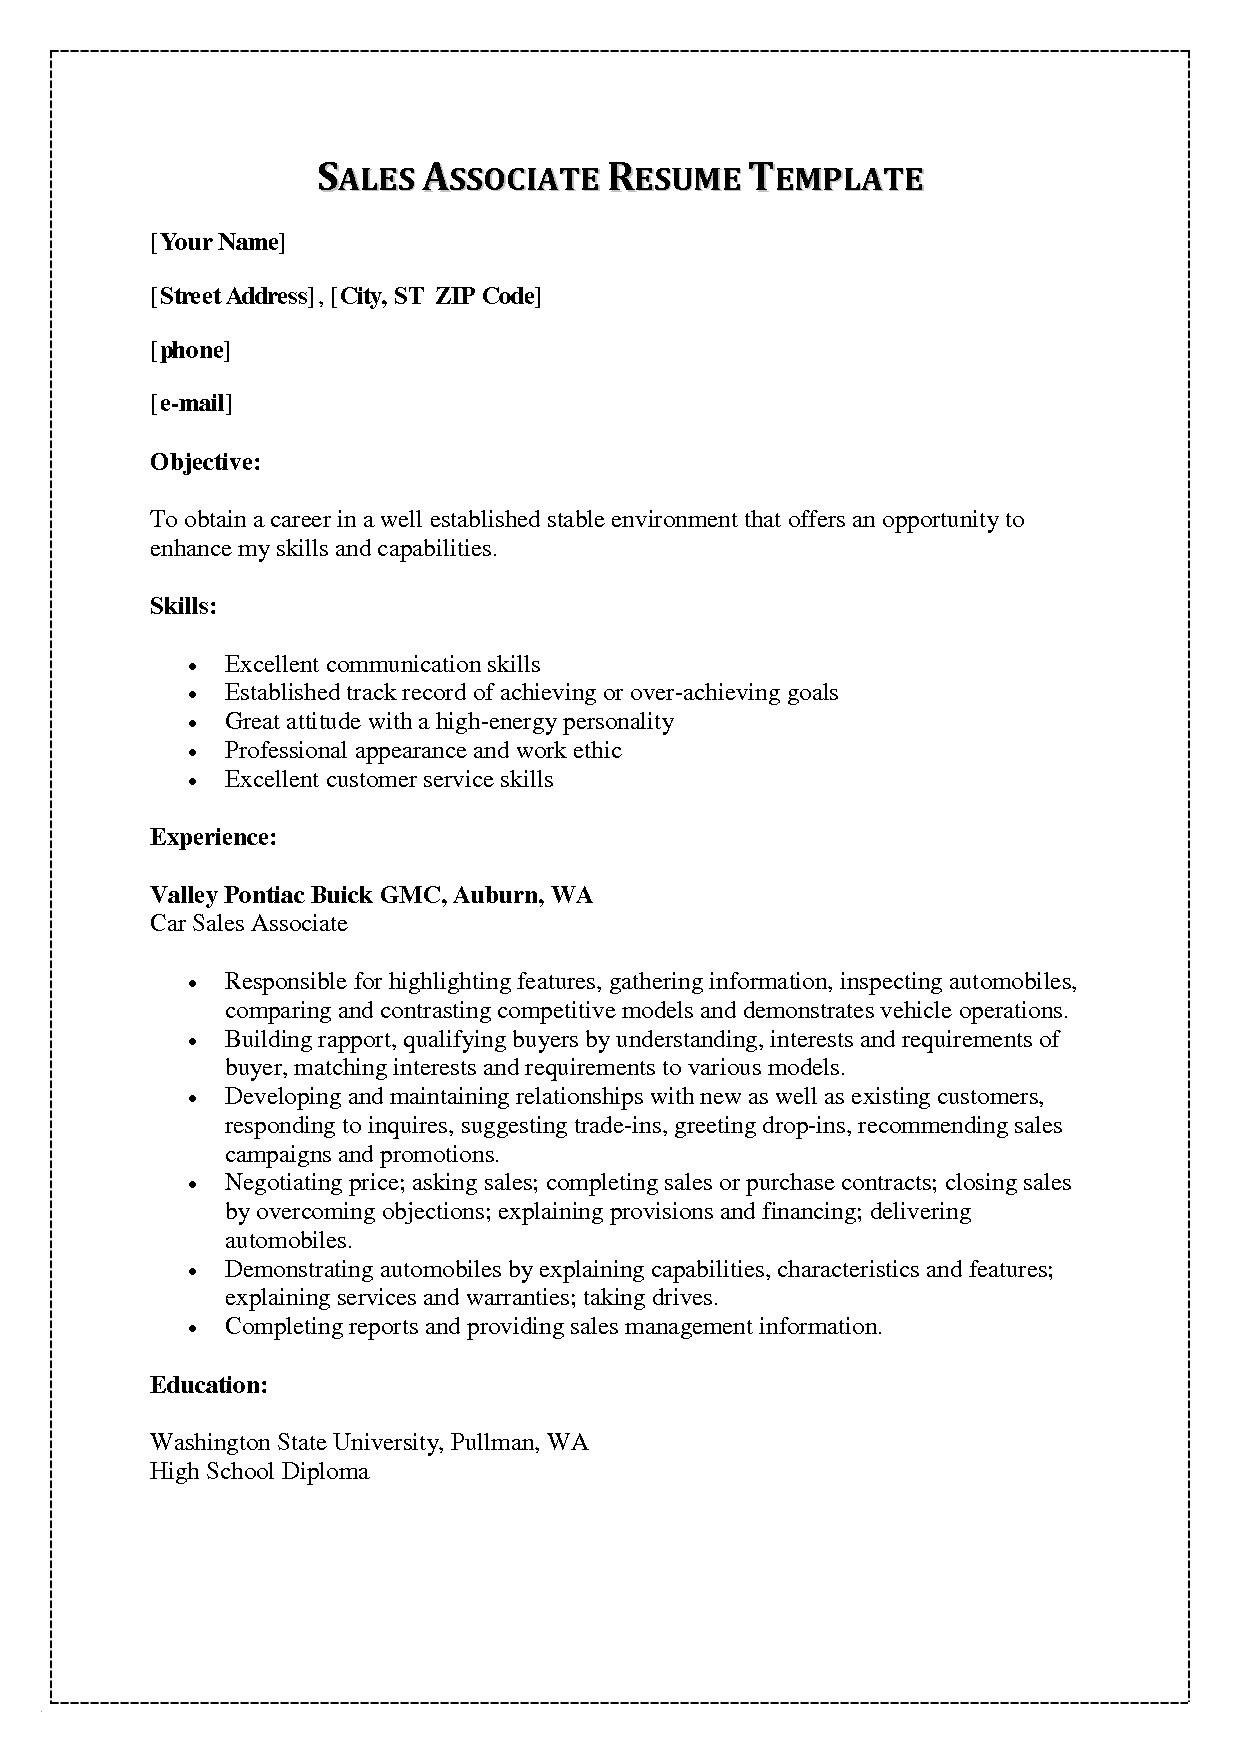 Salesperson Resume Template - Resume Examples for Sales associate Best Awesome How Can I Do A